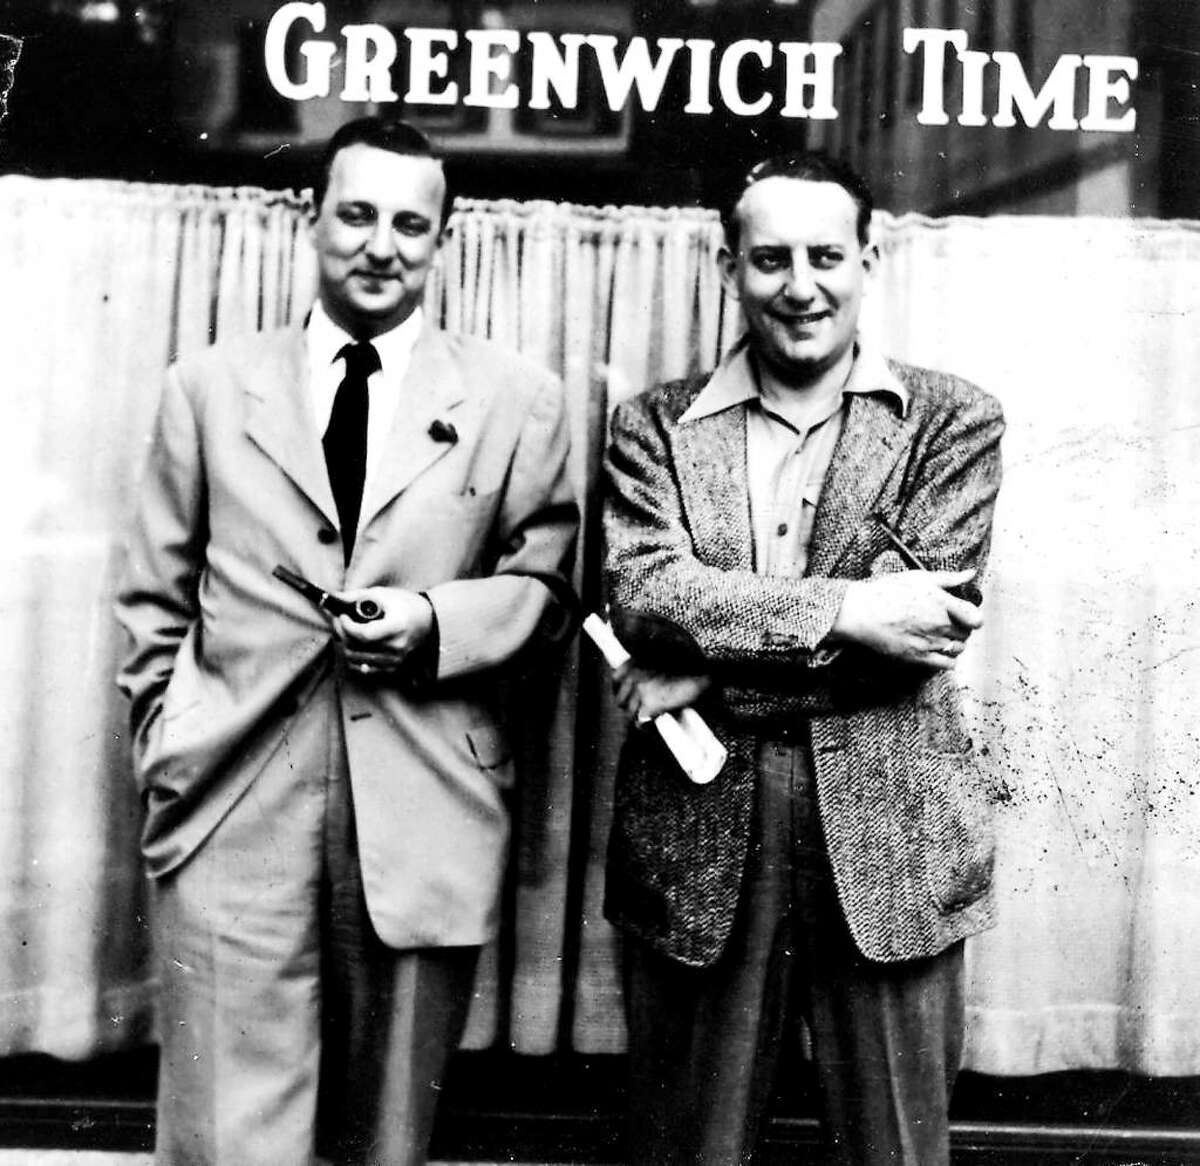 Bernie Yudain, left, and his brother Ted Yudain in front of the Greenwich Time building on East Elm Street, circa 1937. Bernie Yudain started as a reporter when the paper was called the Daily News and Graphic. It became the Greenwich Time in 1937, after which he worked his way up to managing editor. Ted Yudain bounced between the Daily News and Graphic and the Stamford Advocate until he was named editor of Greenwich Time in 1945 and held the position until 1963 when he left to become the editor of the Stamford Advocate. Bernie Yudain died Saturday.